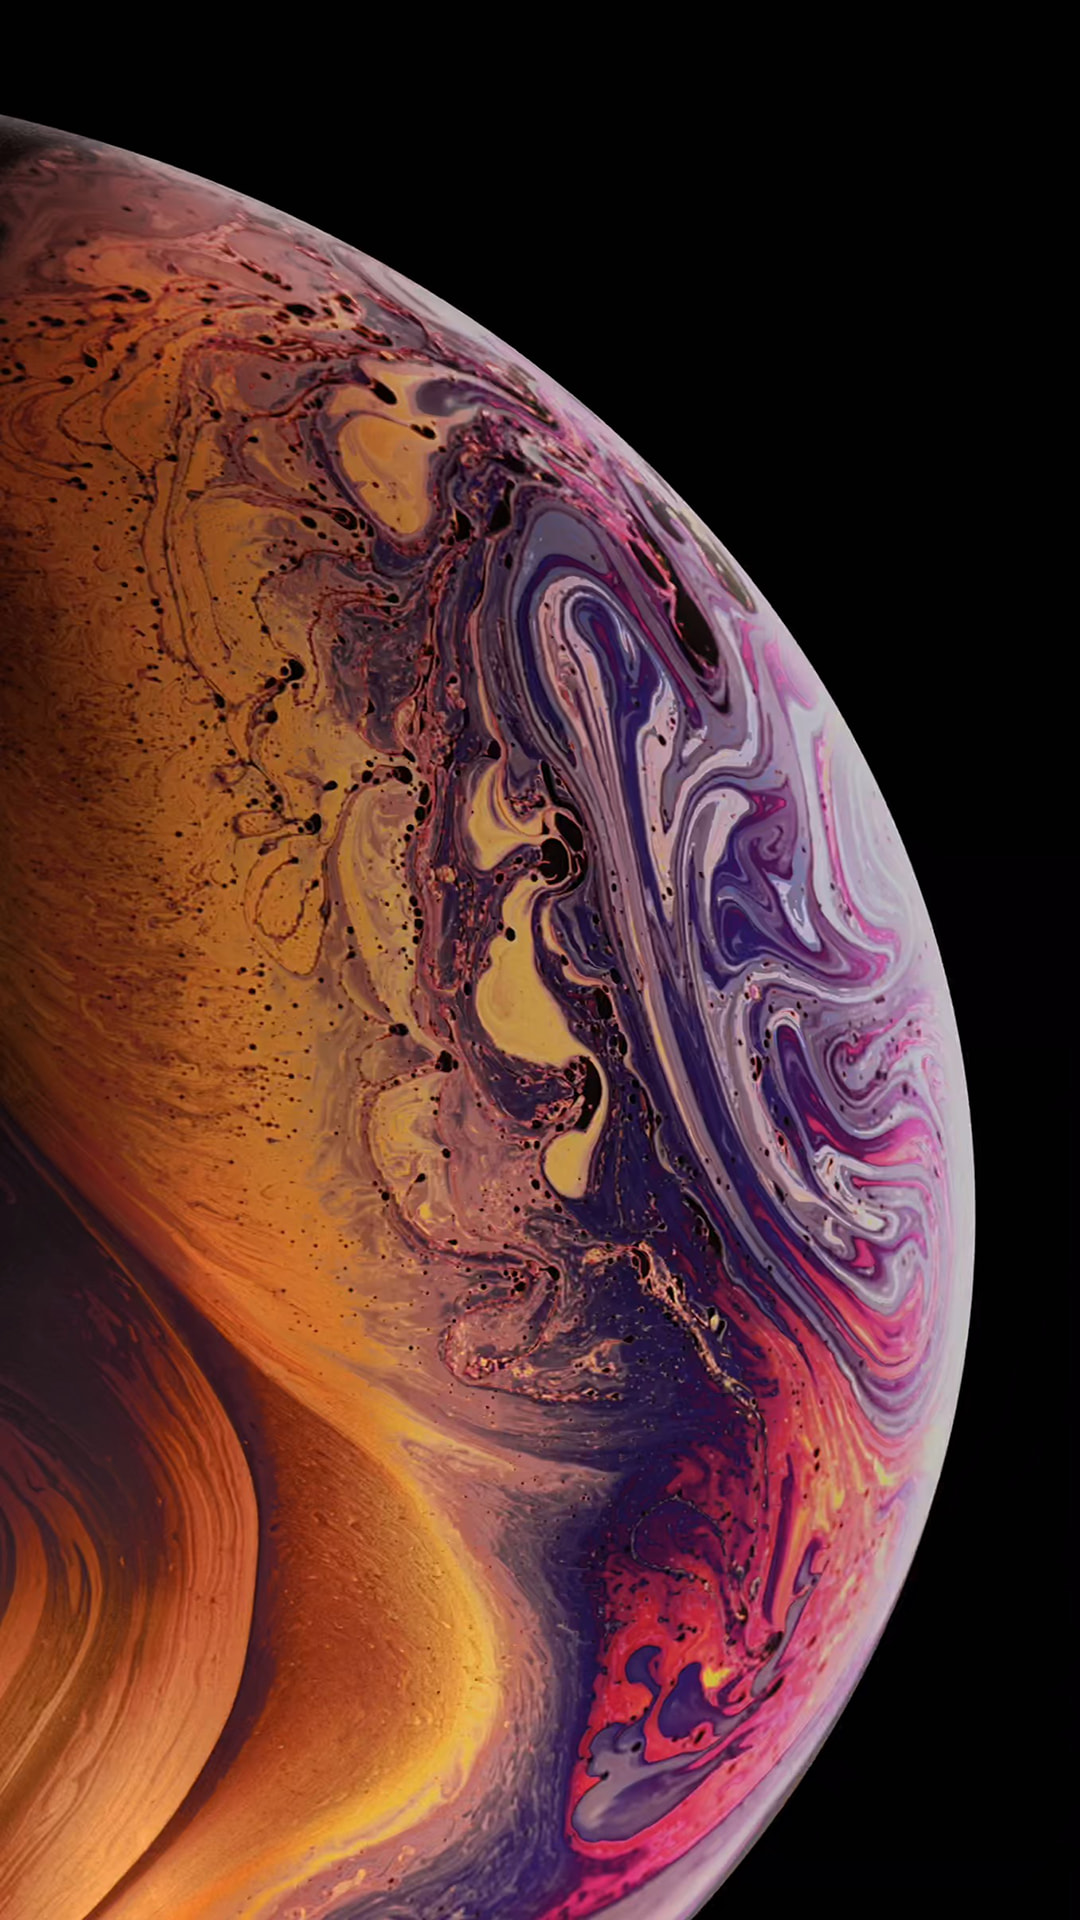 Iphone Xs Iphone Wallpaper